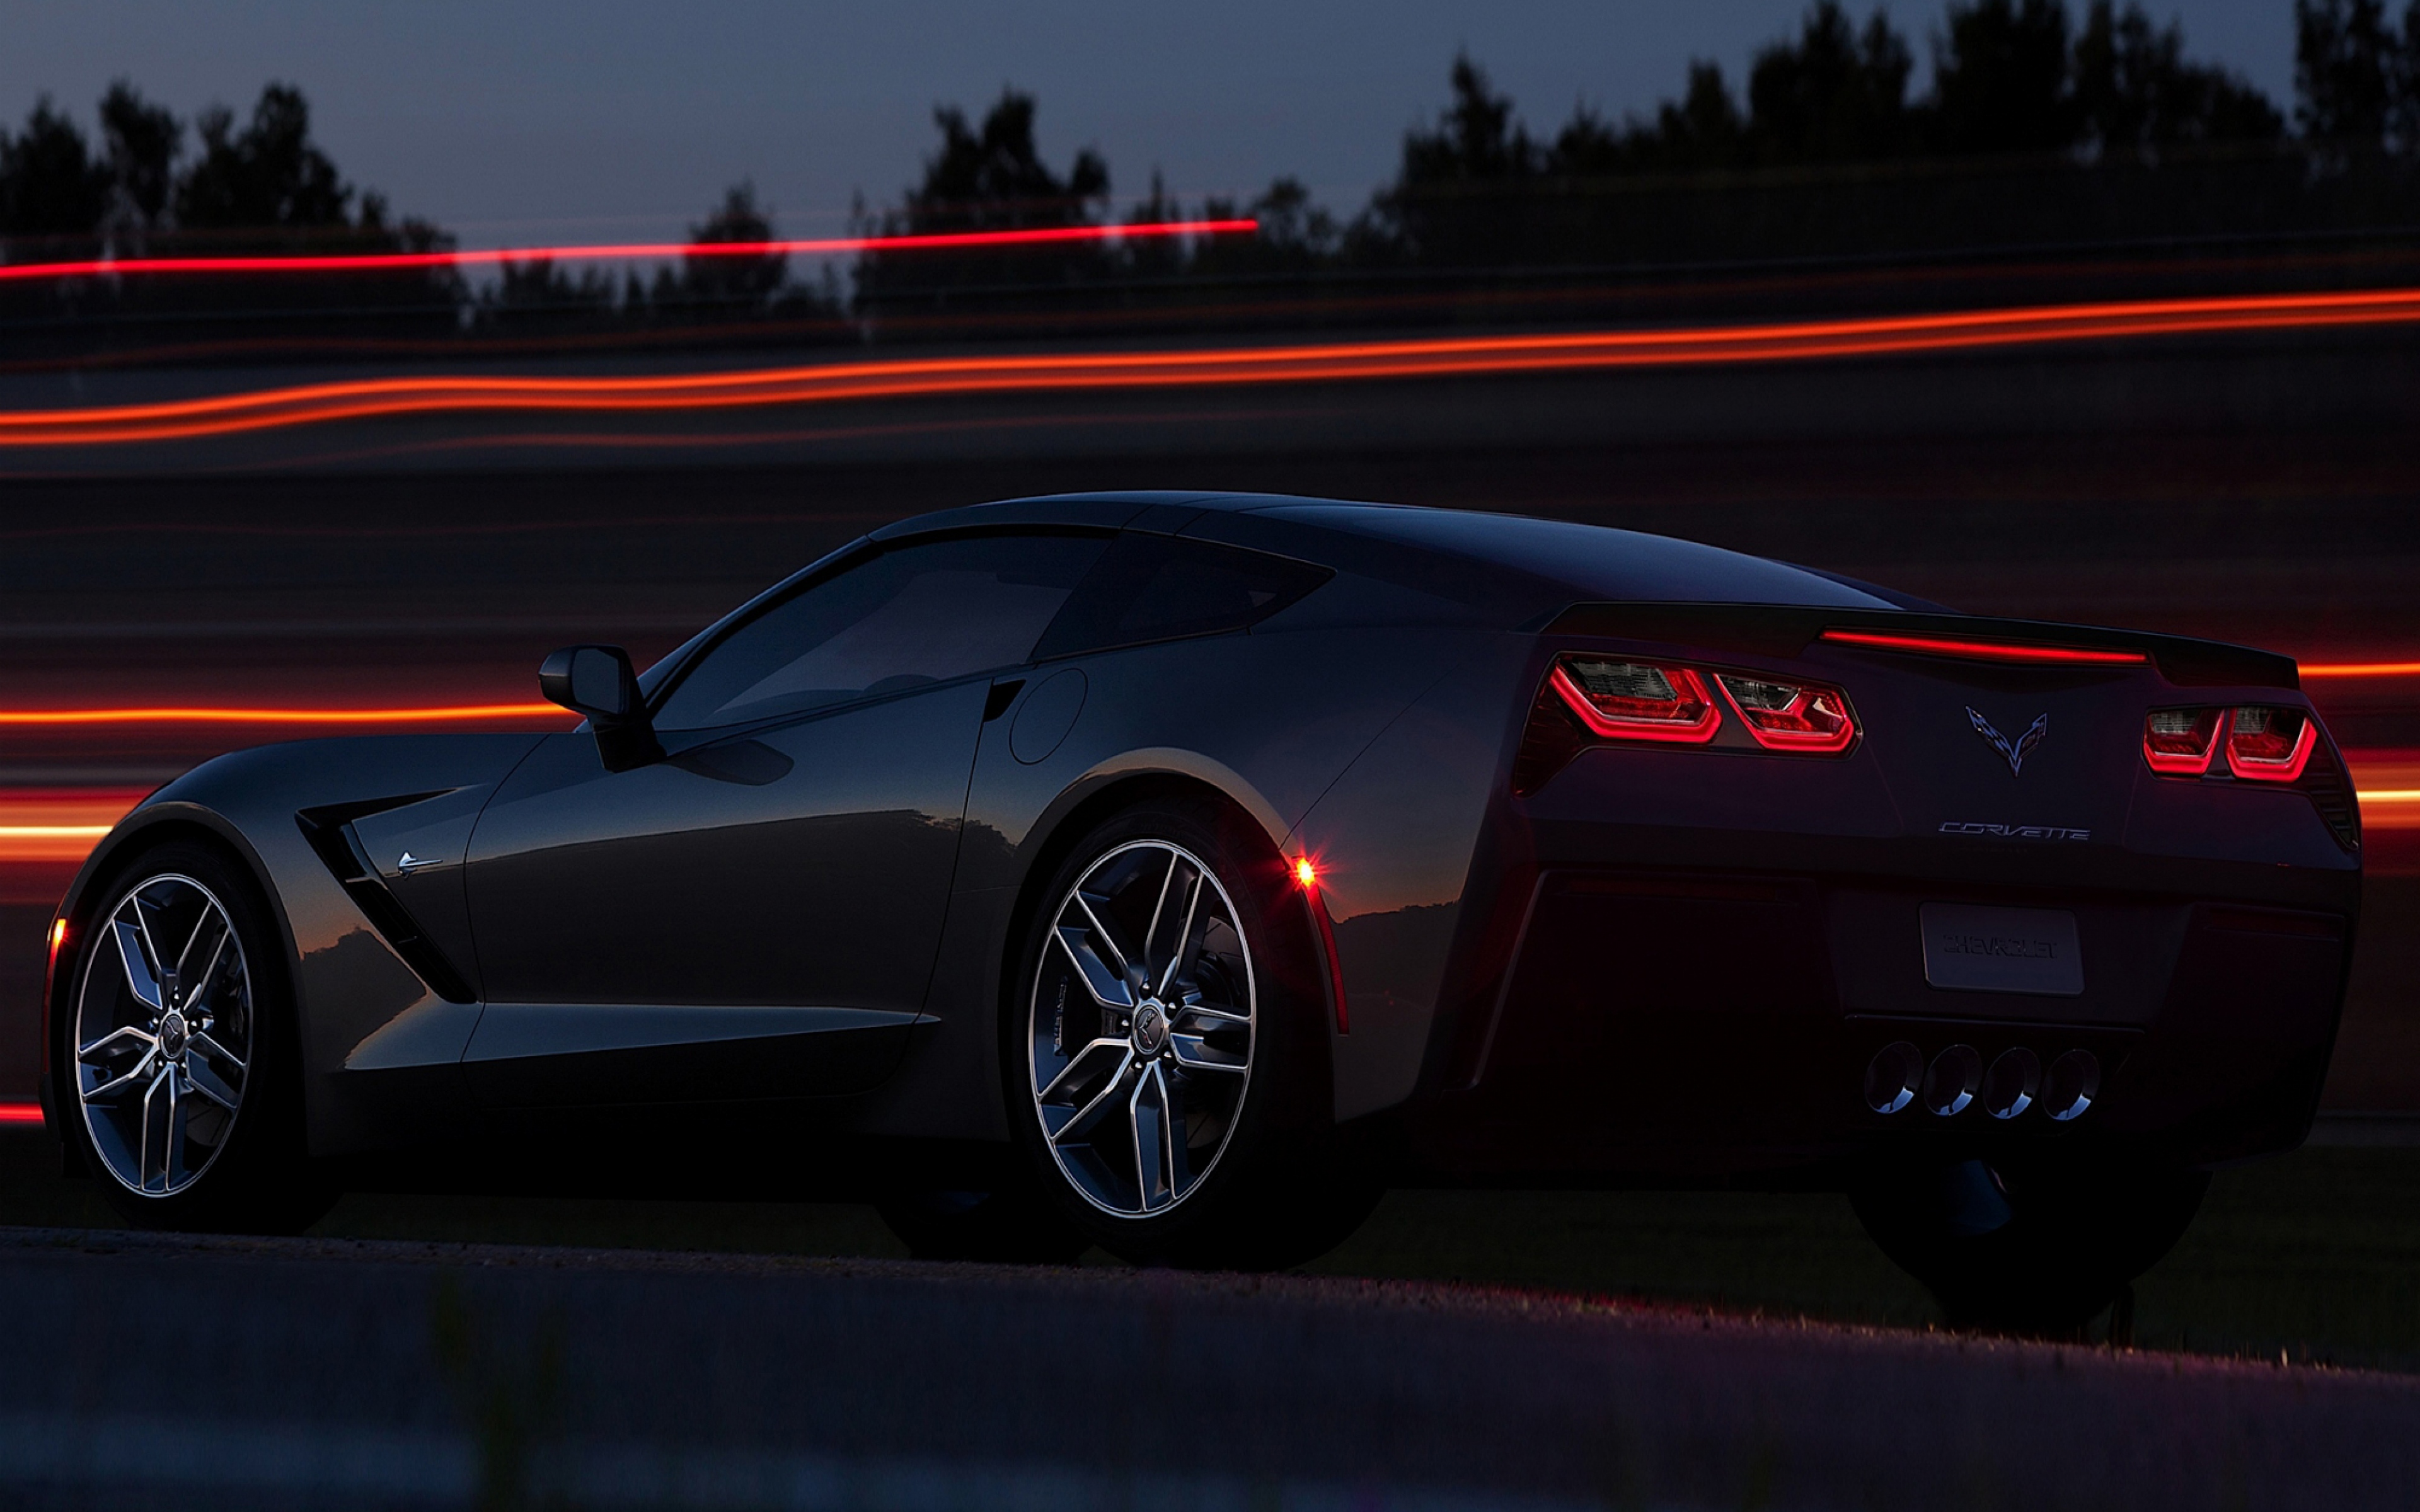 chevrolet_corvette_stingray_c7_95549_3840x2400